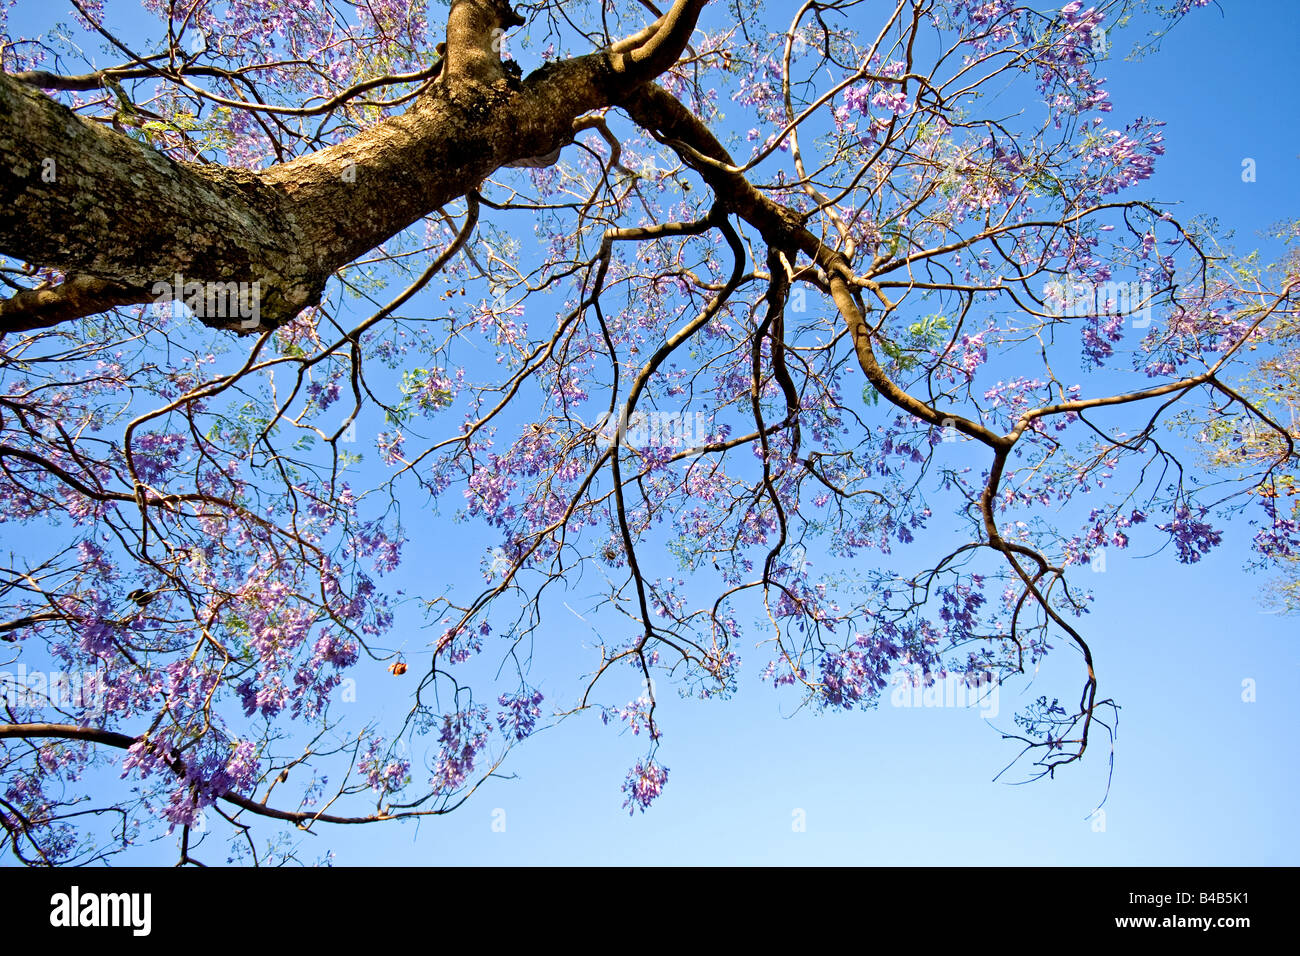 Jacaranda tree stock photos jacaranda tree stock images alamy blue jacaranda in flowers against blue sky stock image izmirmasajfo